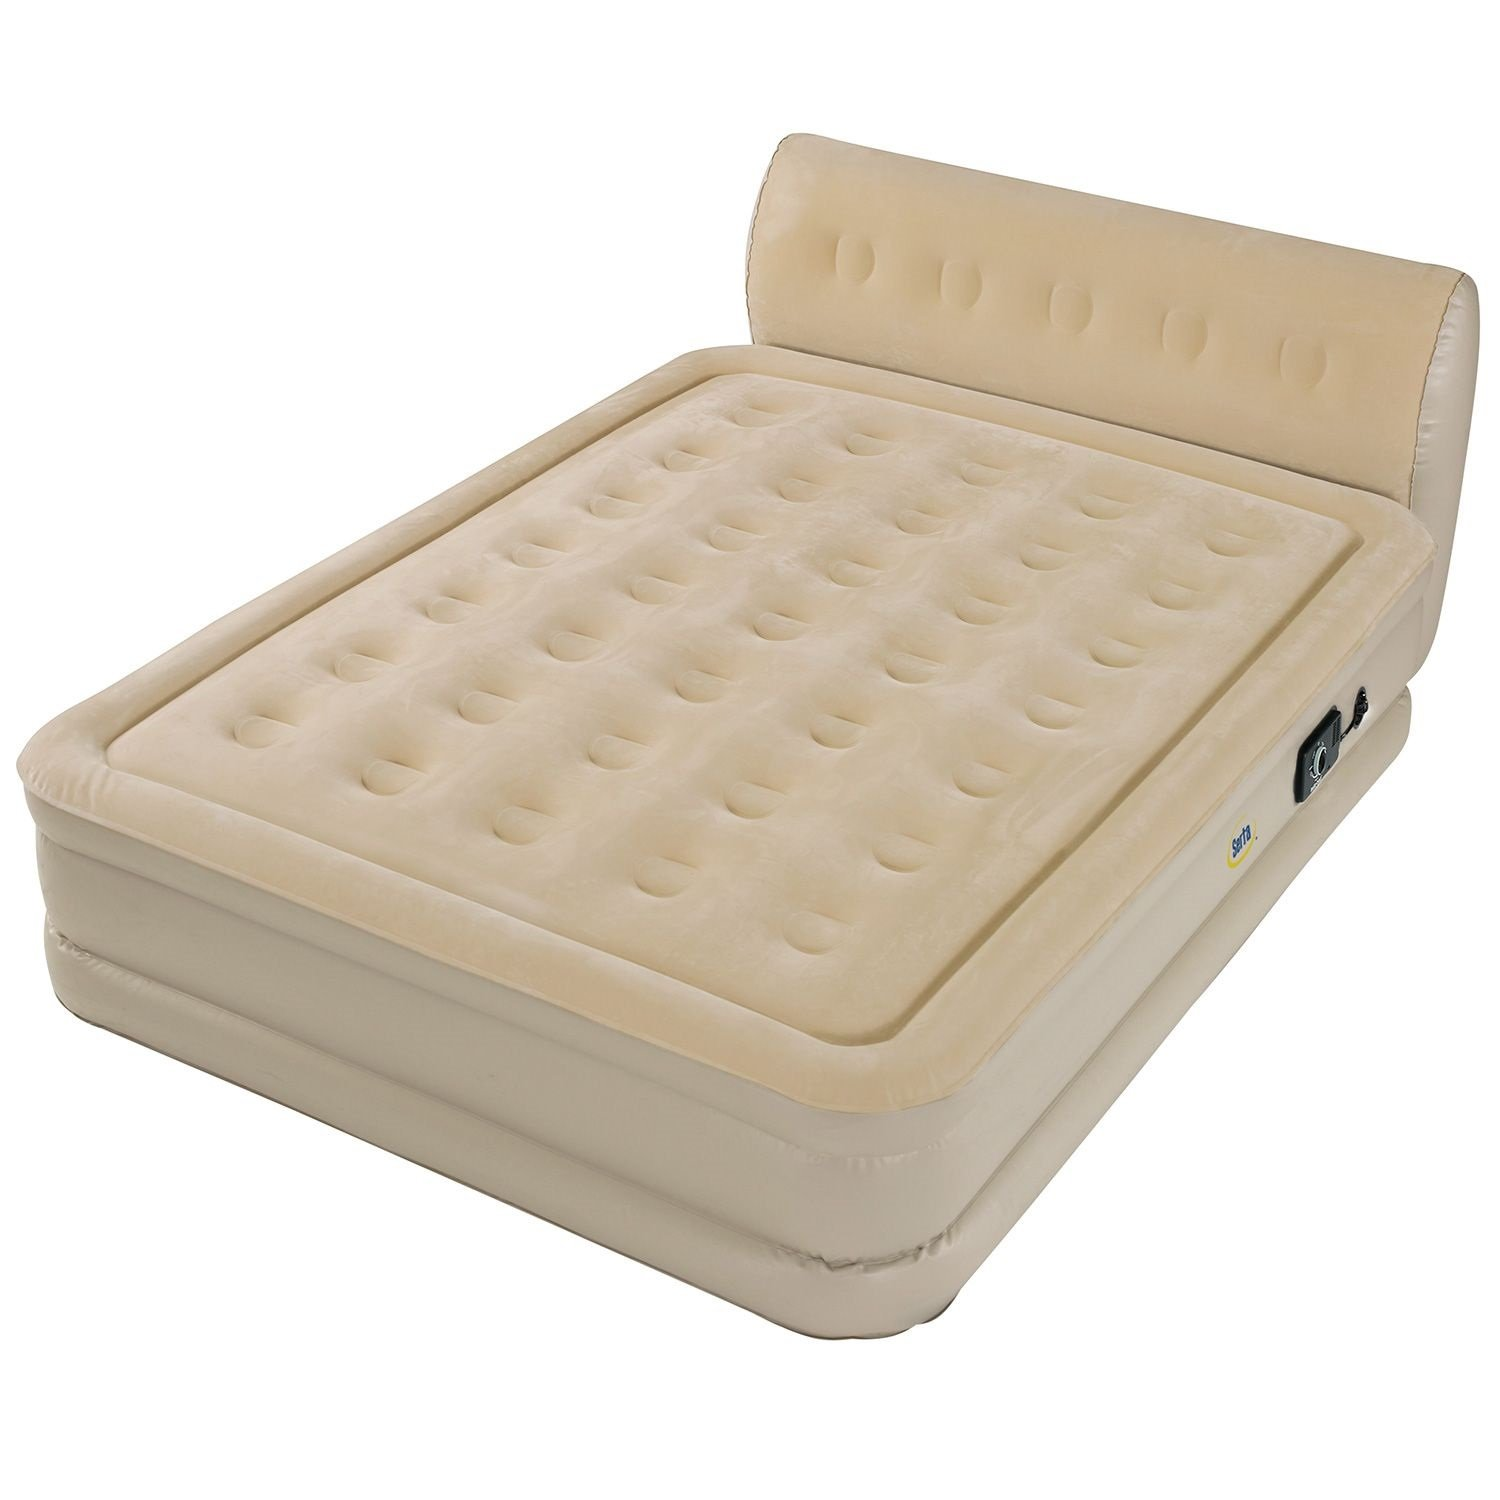 intex res pillow beds dura inflatable size with ebay rest raised pu itm air bed pump beam king